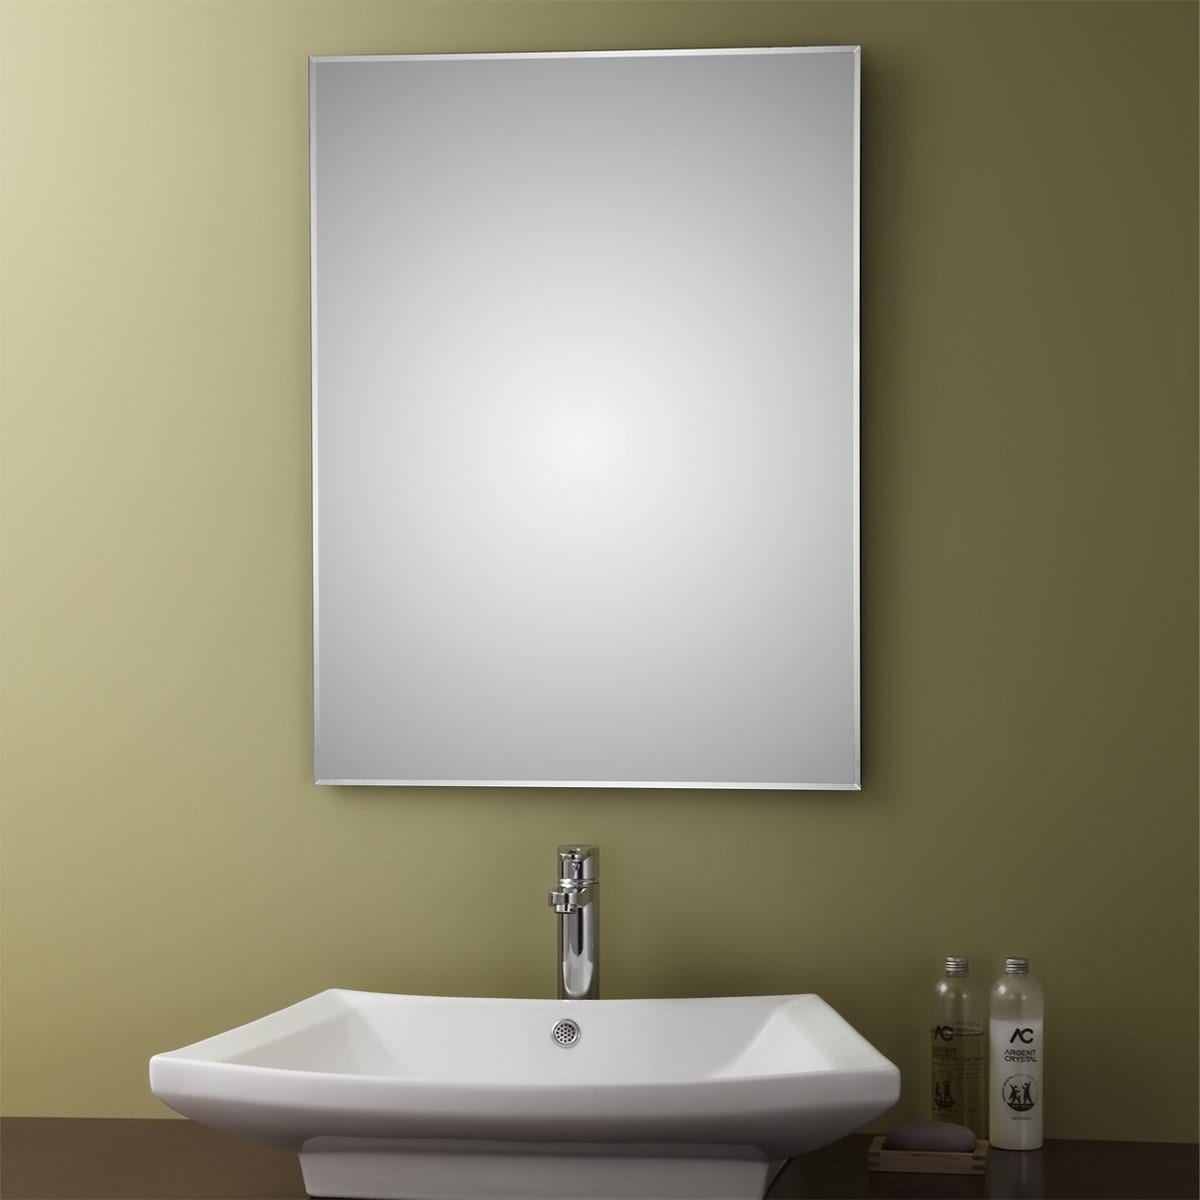 Belvedere 32 x 24 inch Frameless Wall Mirror. Bathroom Mirrors Bath Store   Shop The Best Deals For Apr 2017